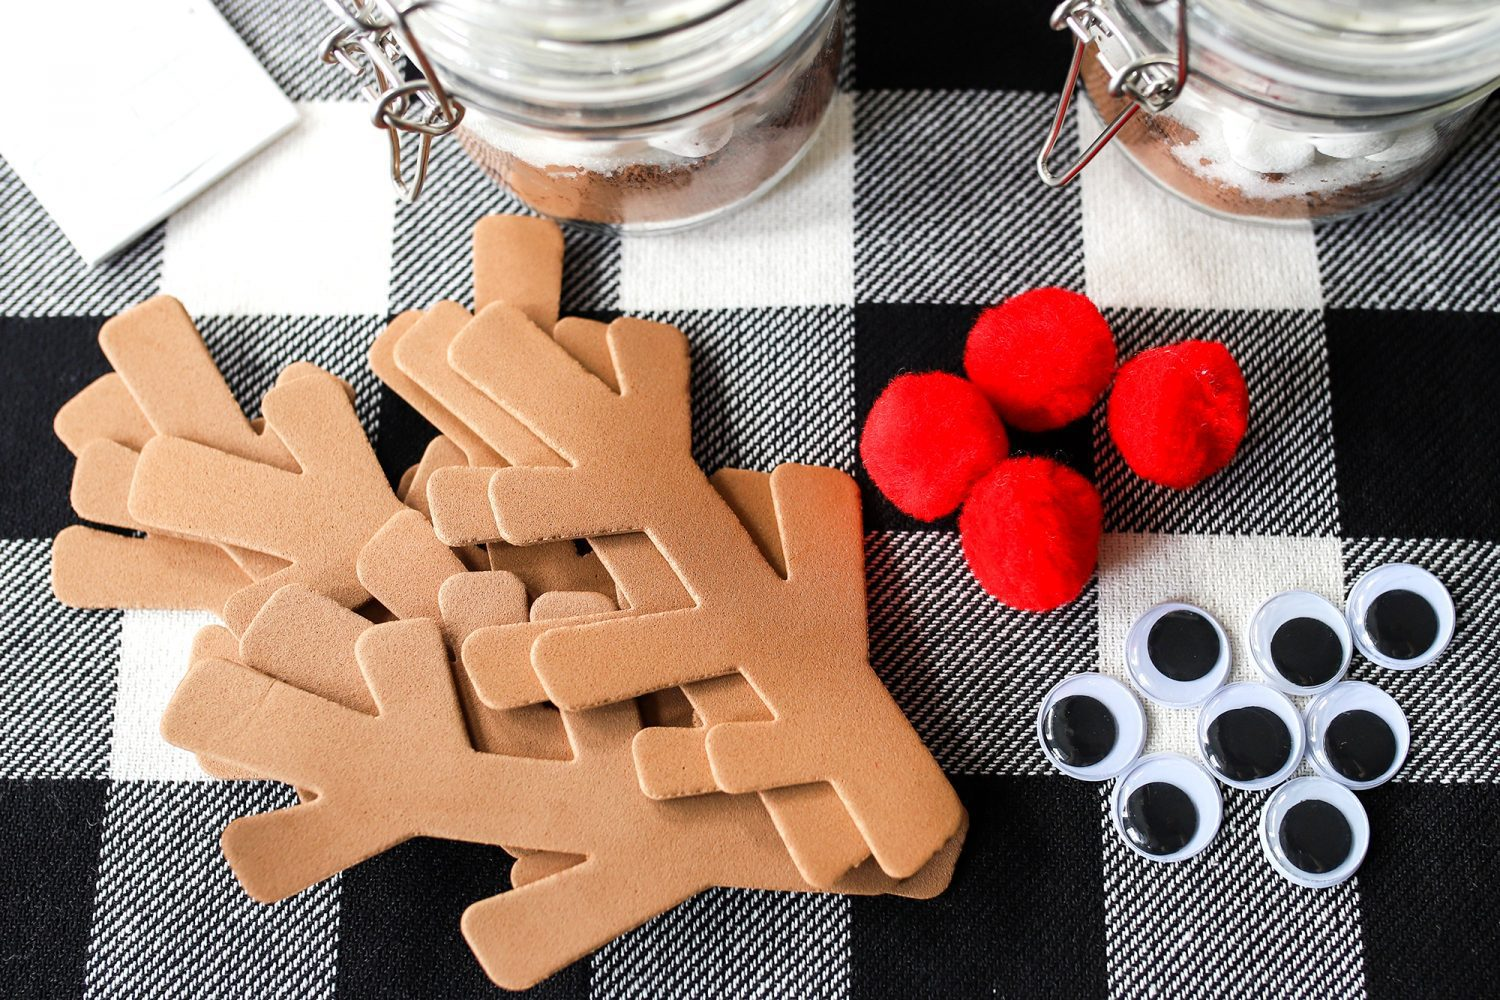 craft pieces you need to create a reindeer